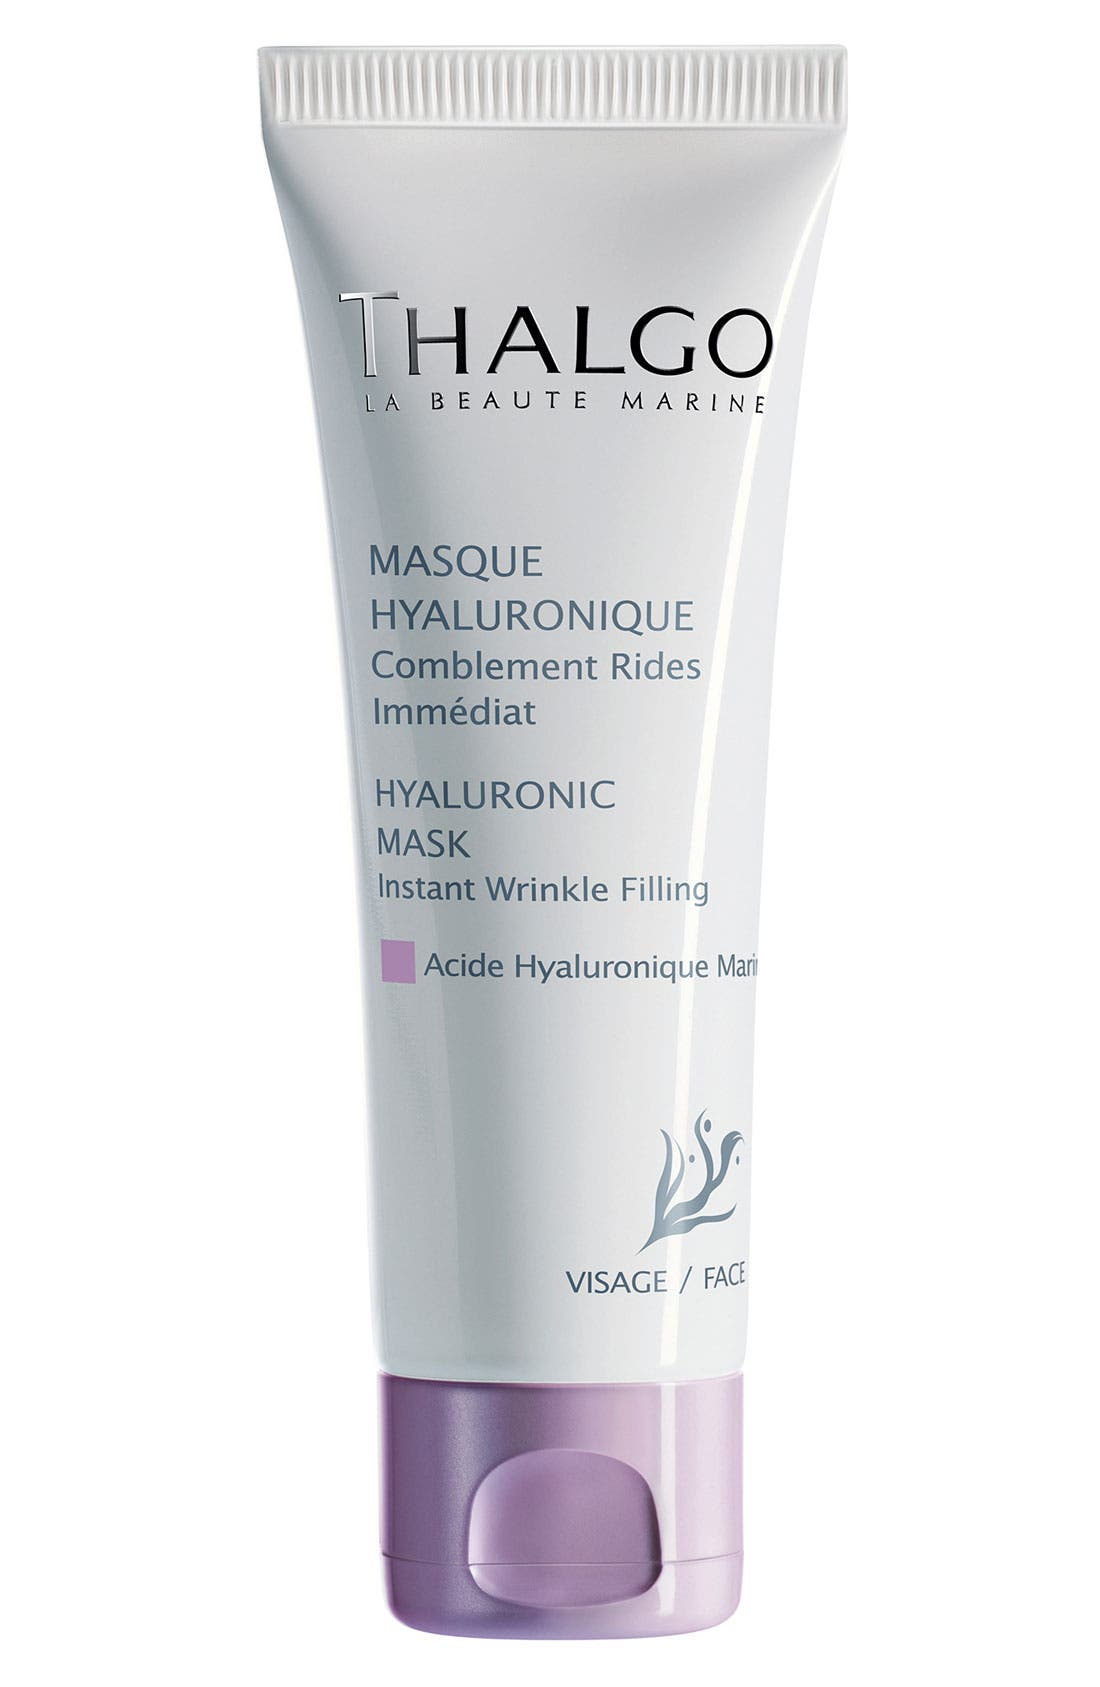 Thalgo 'Hyaluronic' Mask